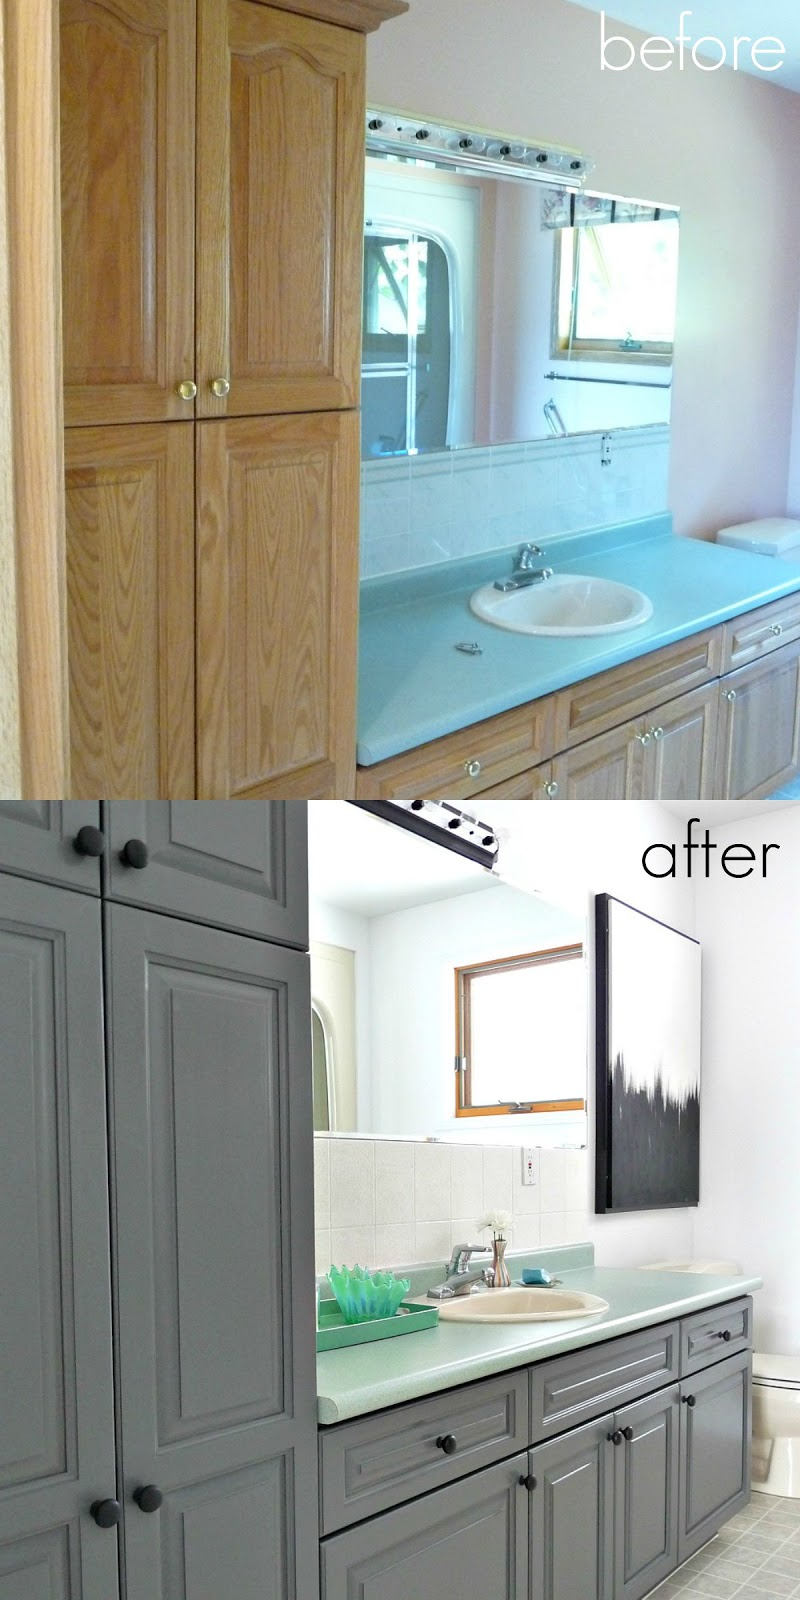 A Budget-Friendly Bathroom Makeover Using Paint | Dans le Lakehouse